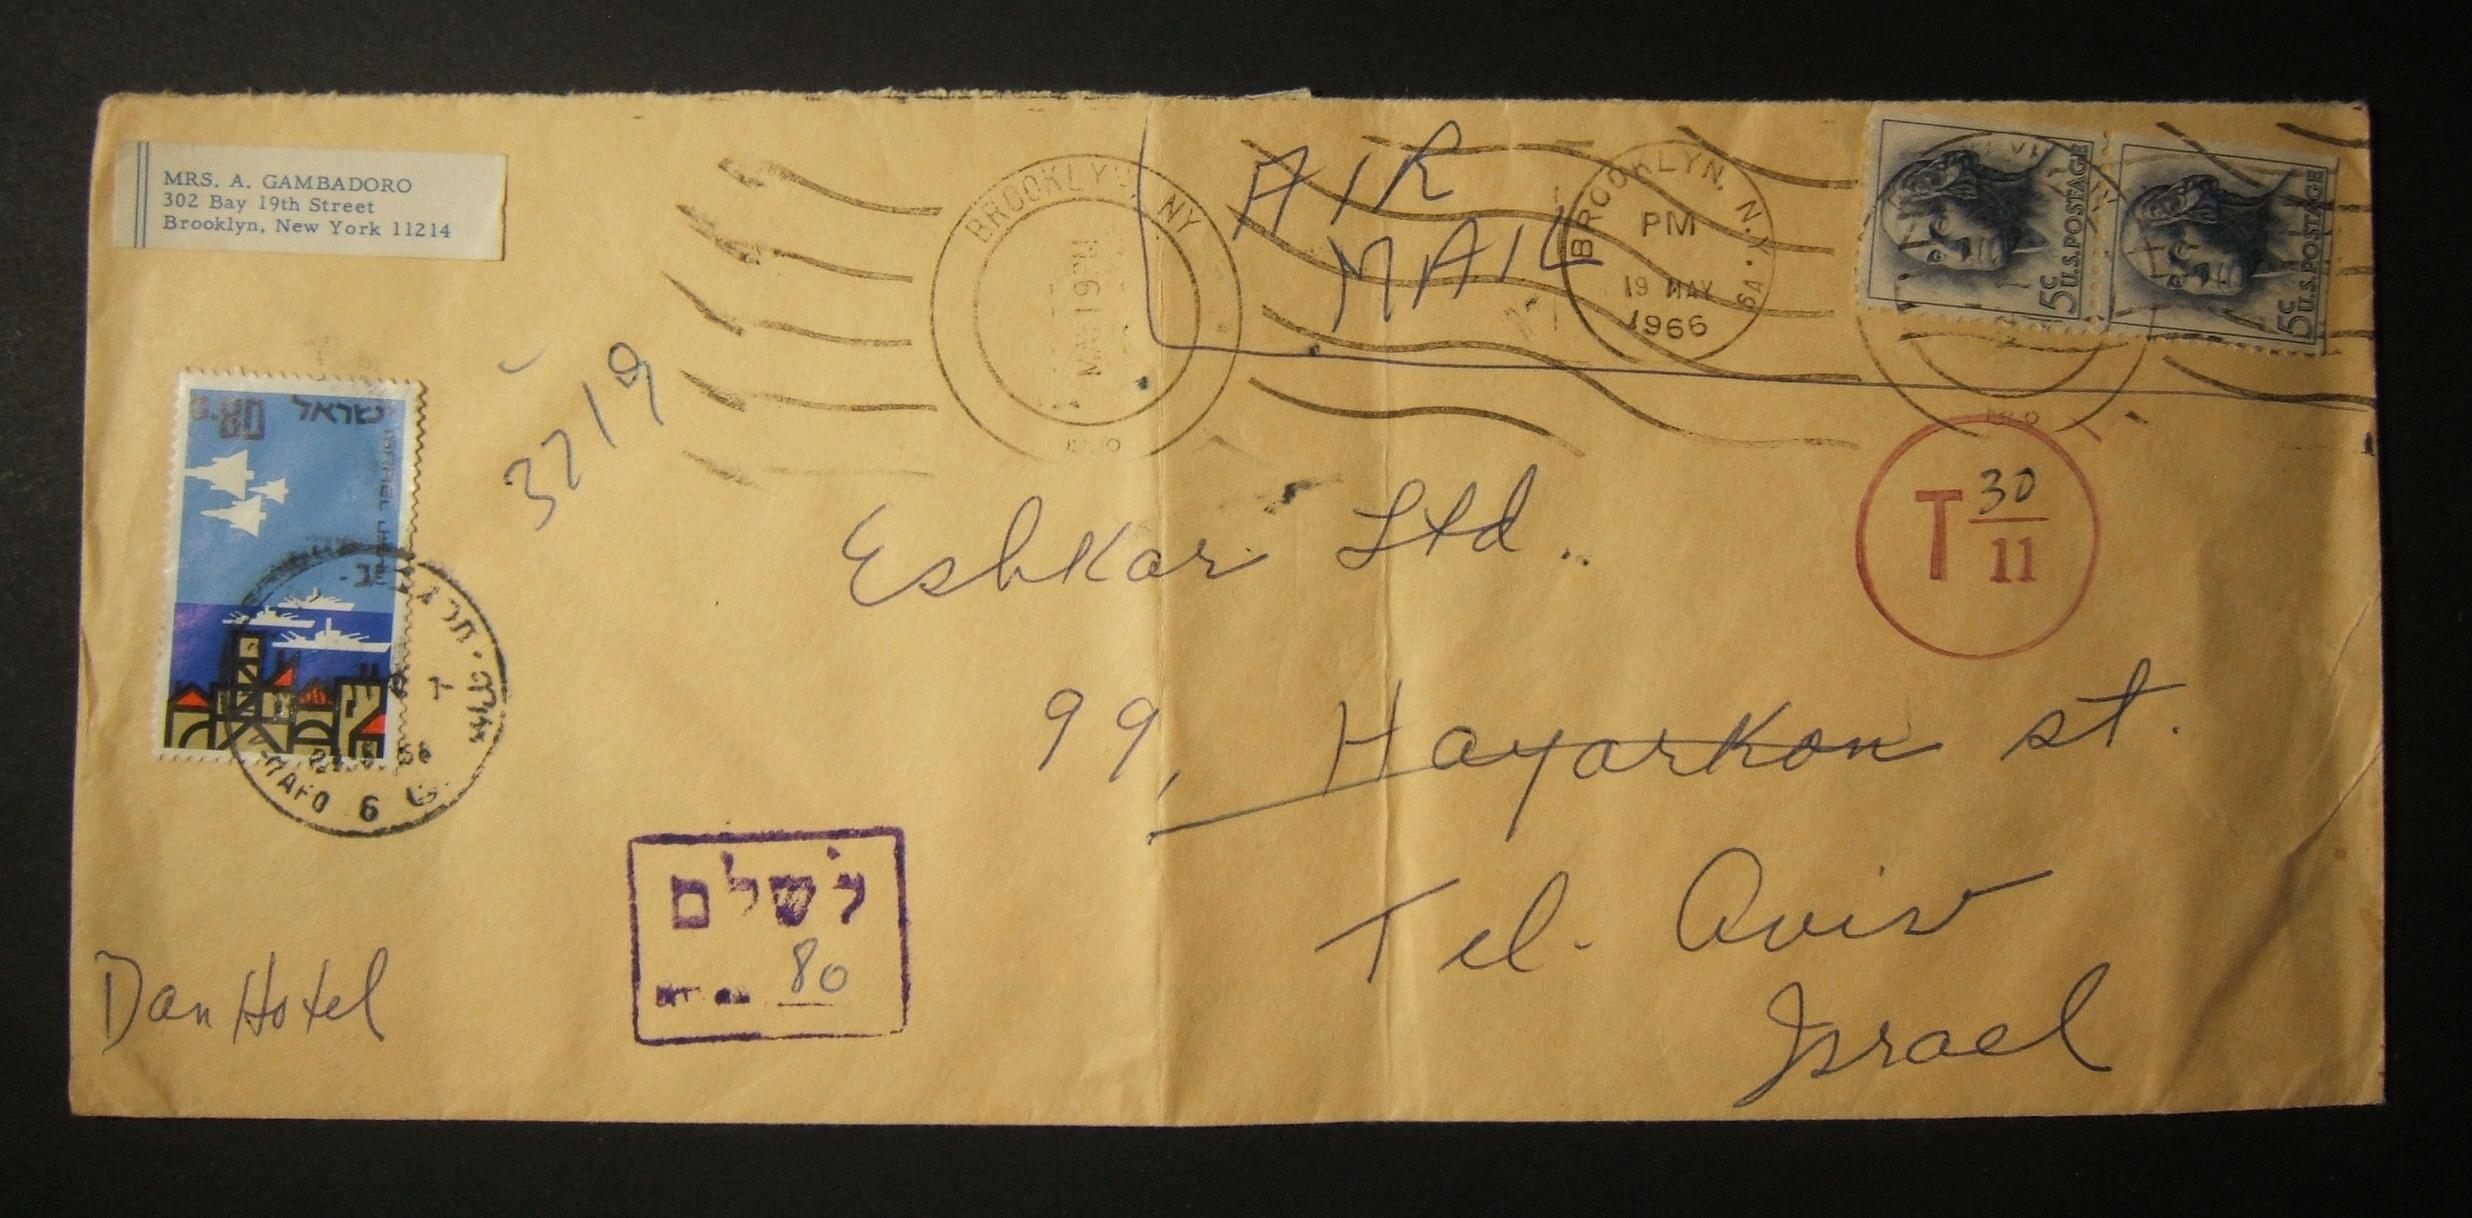 1966 incoming US postage due mail: 19 MAY 1966 airmail cover ex BROOKLYN to TLV underfranked at 10c and marked for 30c tax in US, paid in TLV on front 21(?)-5-1966 as 80 Ag using 1